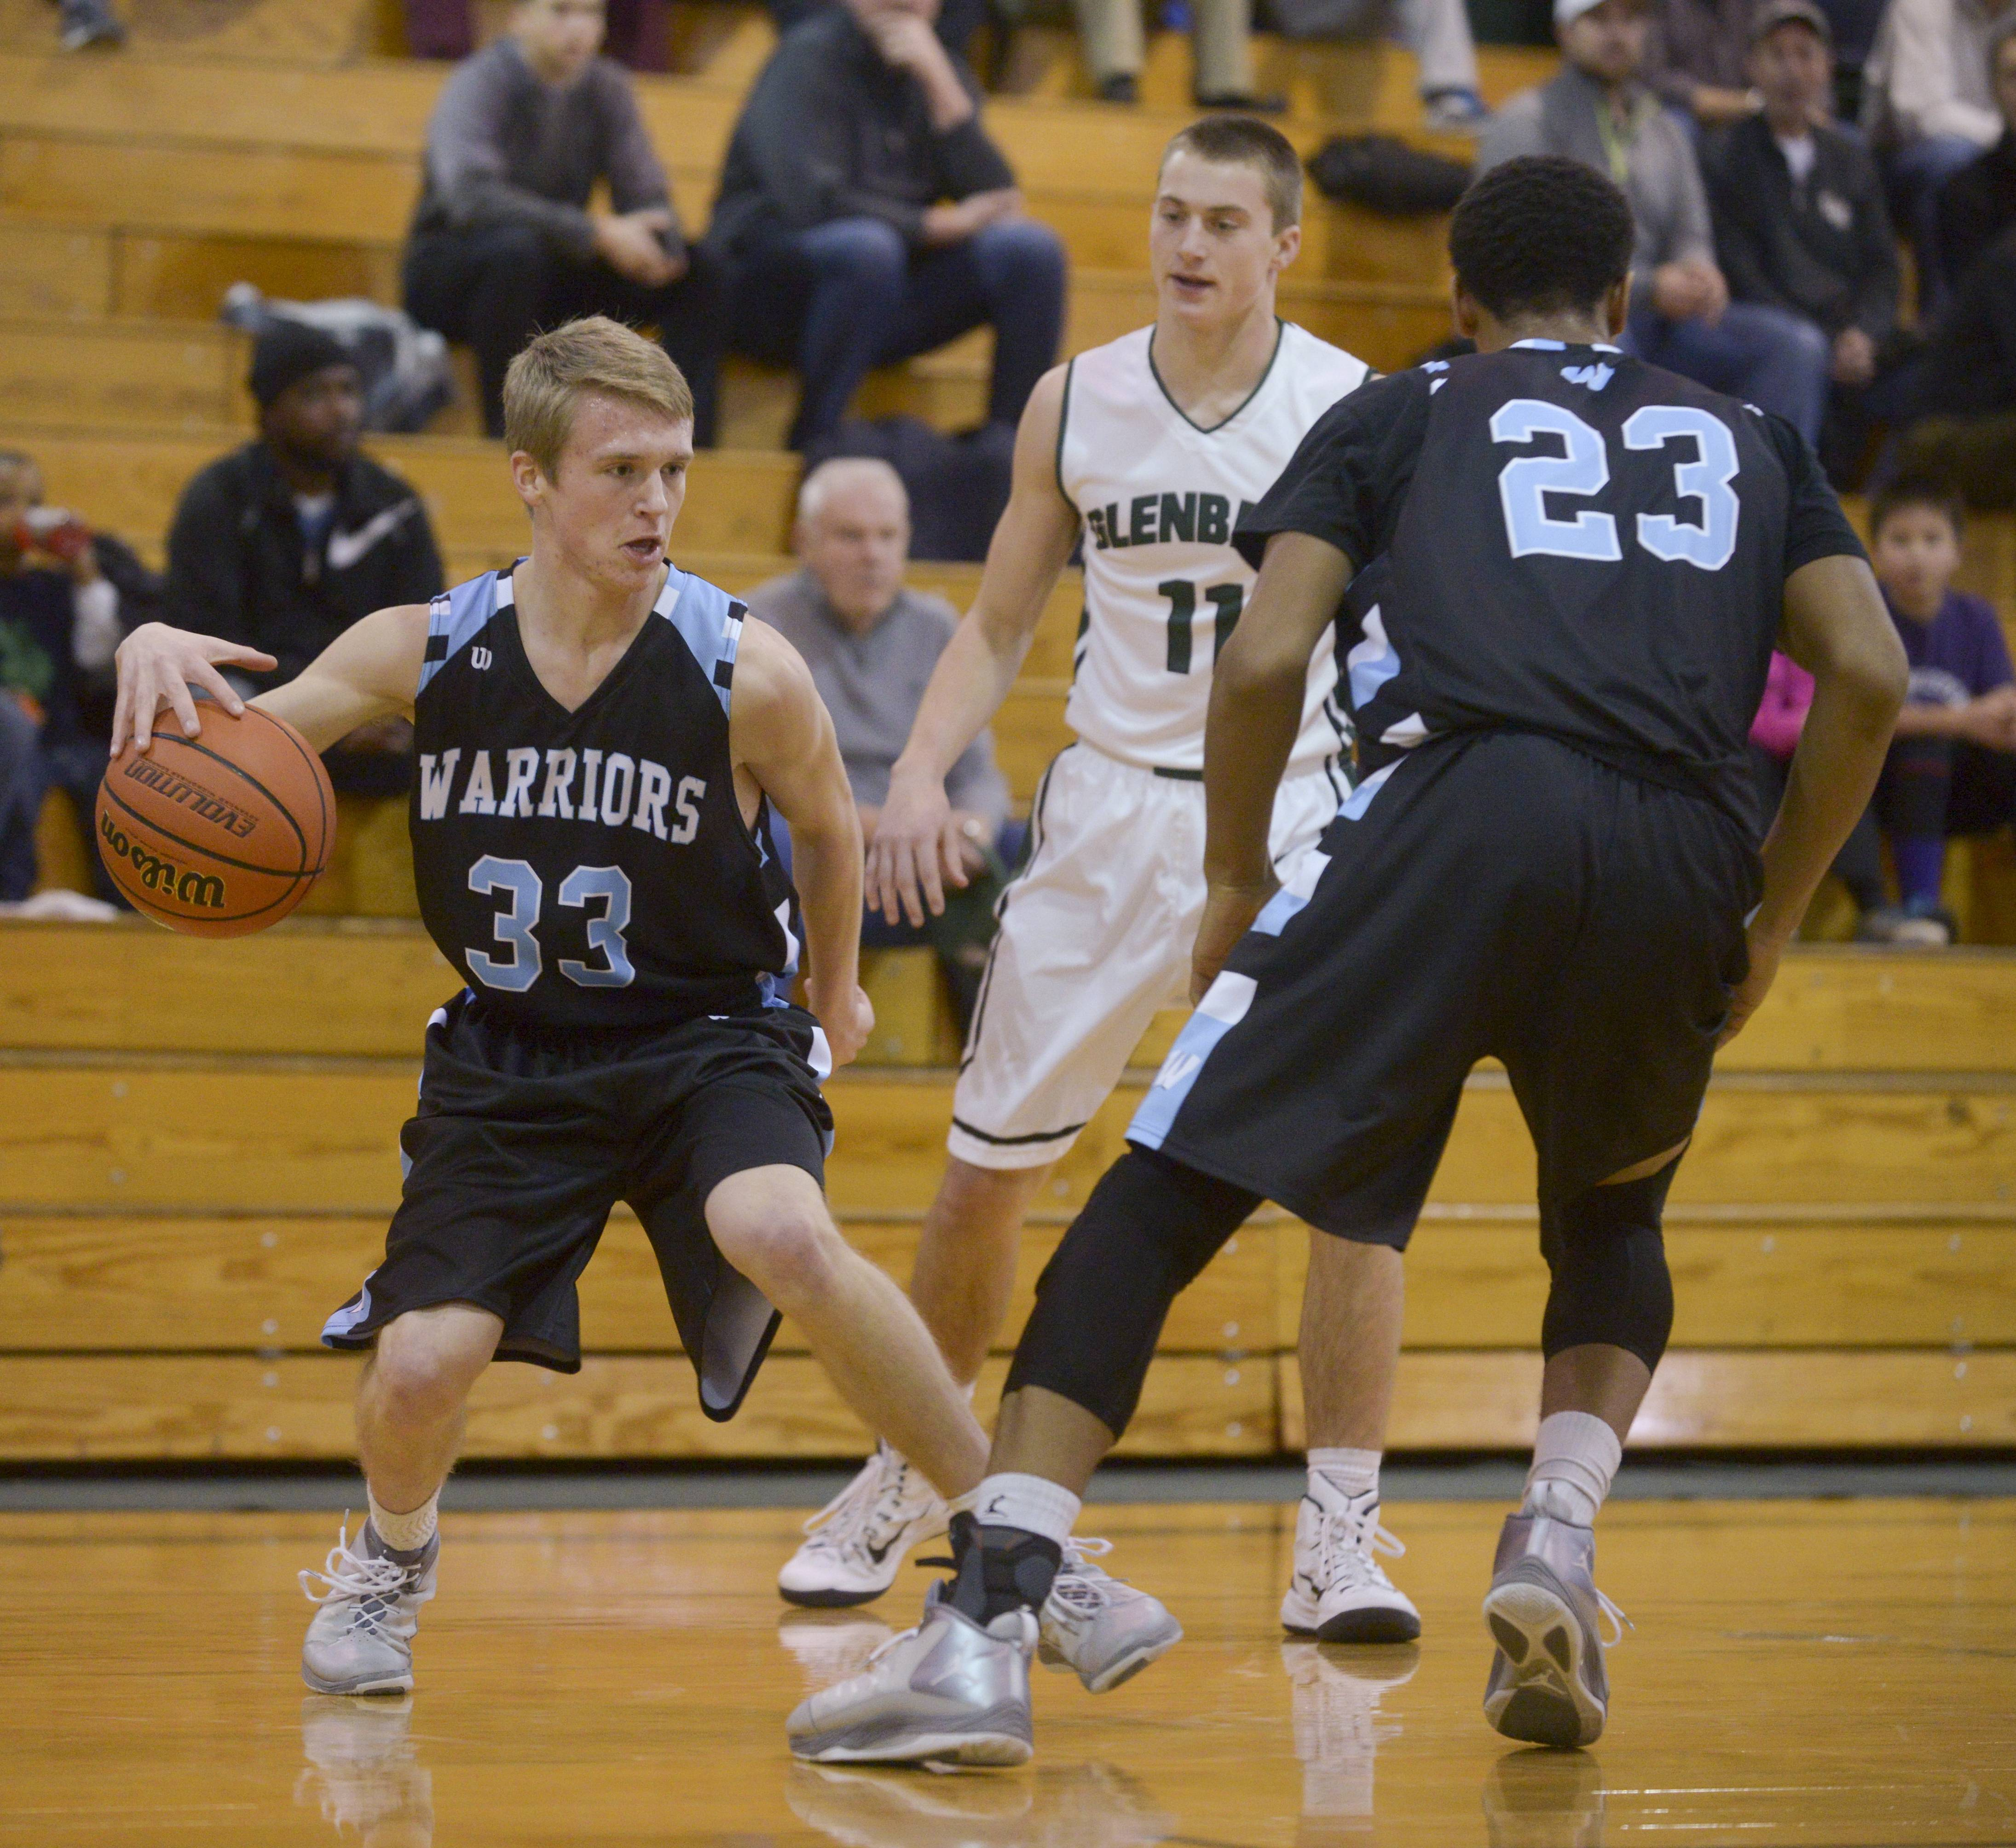 Glenbard West hosted Willowbrook Monday night for boys basketball.